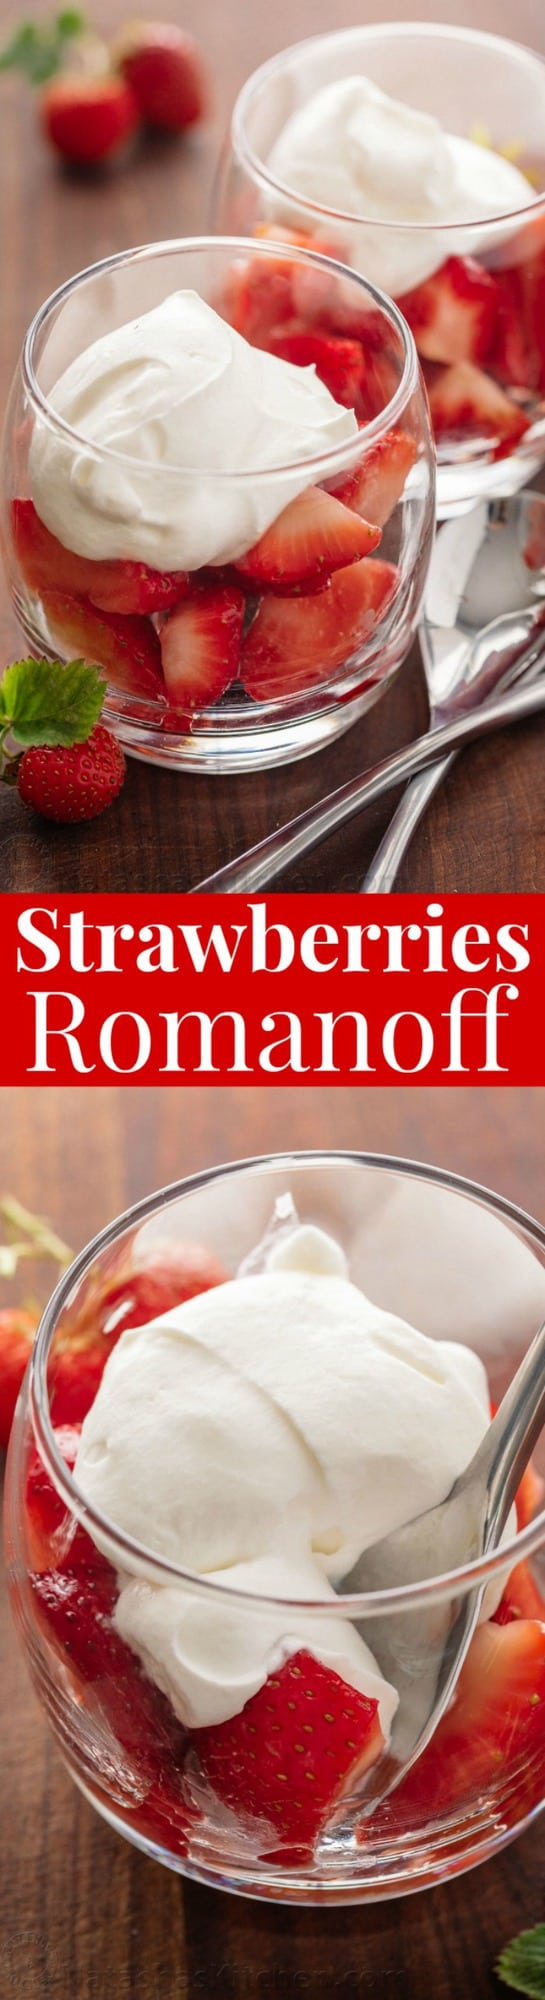 Strawberries Romanoff is a no-bake, easy, luscious summer dessert. Strawberries Romanoff feels fancy but it is simple to make and perfect for parties!   natashaskitchen.com